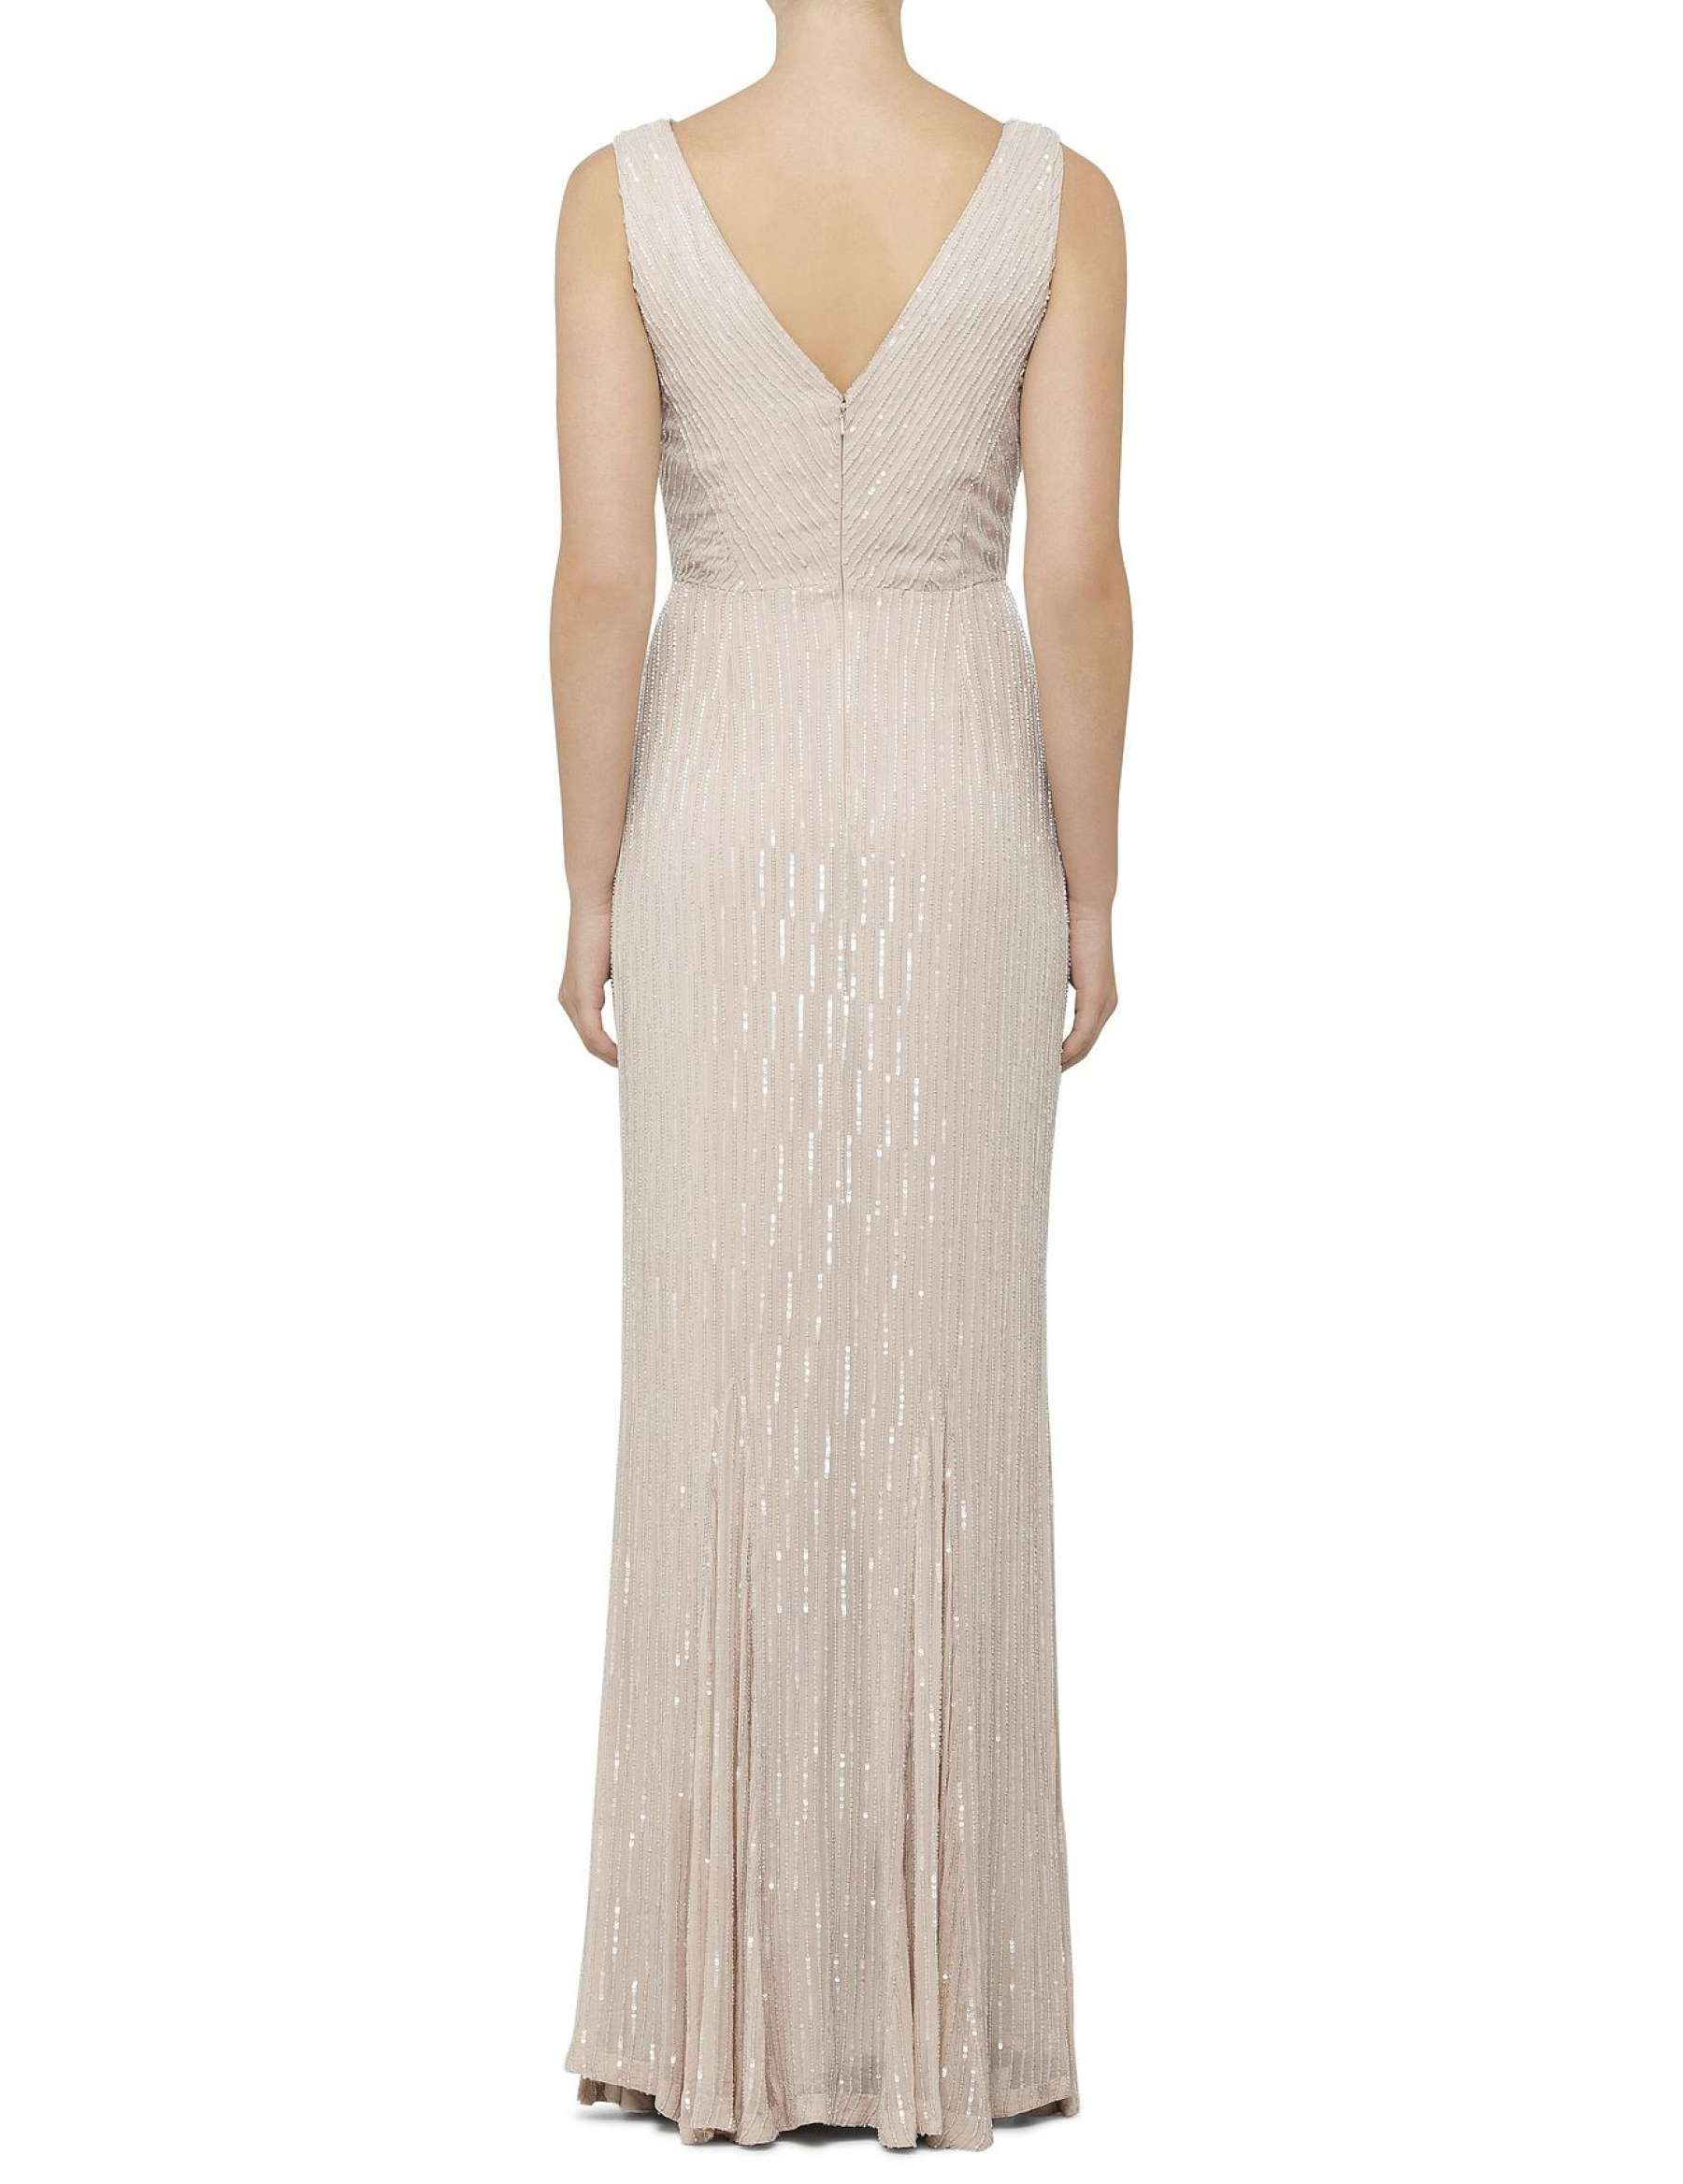 David Jones - Rachel Gilbert Marina Gown | wedding dresses ...